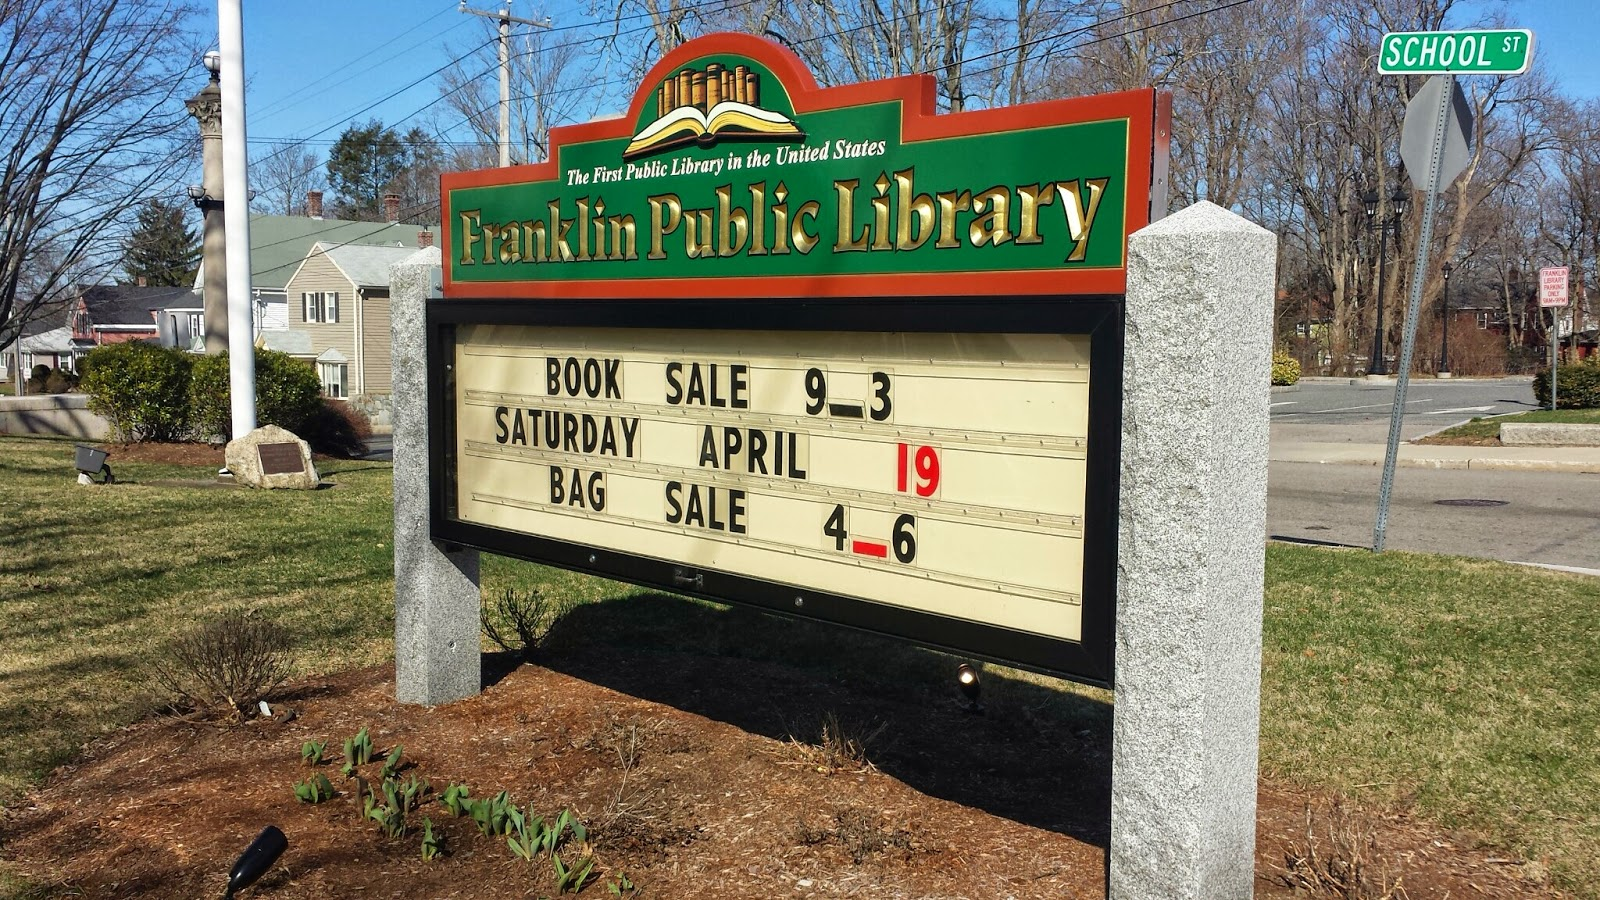 Library Book Sale - Sat April 19th